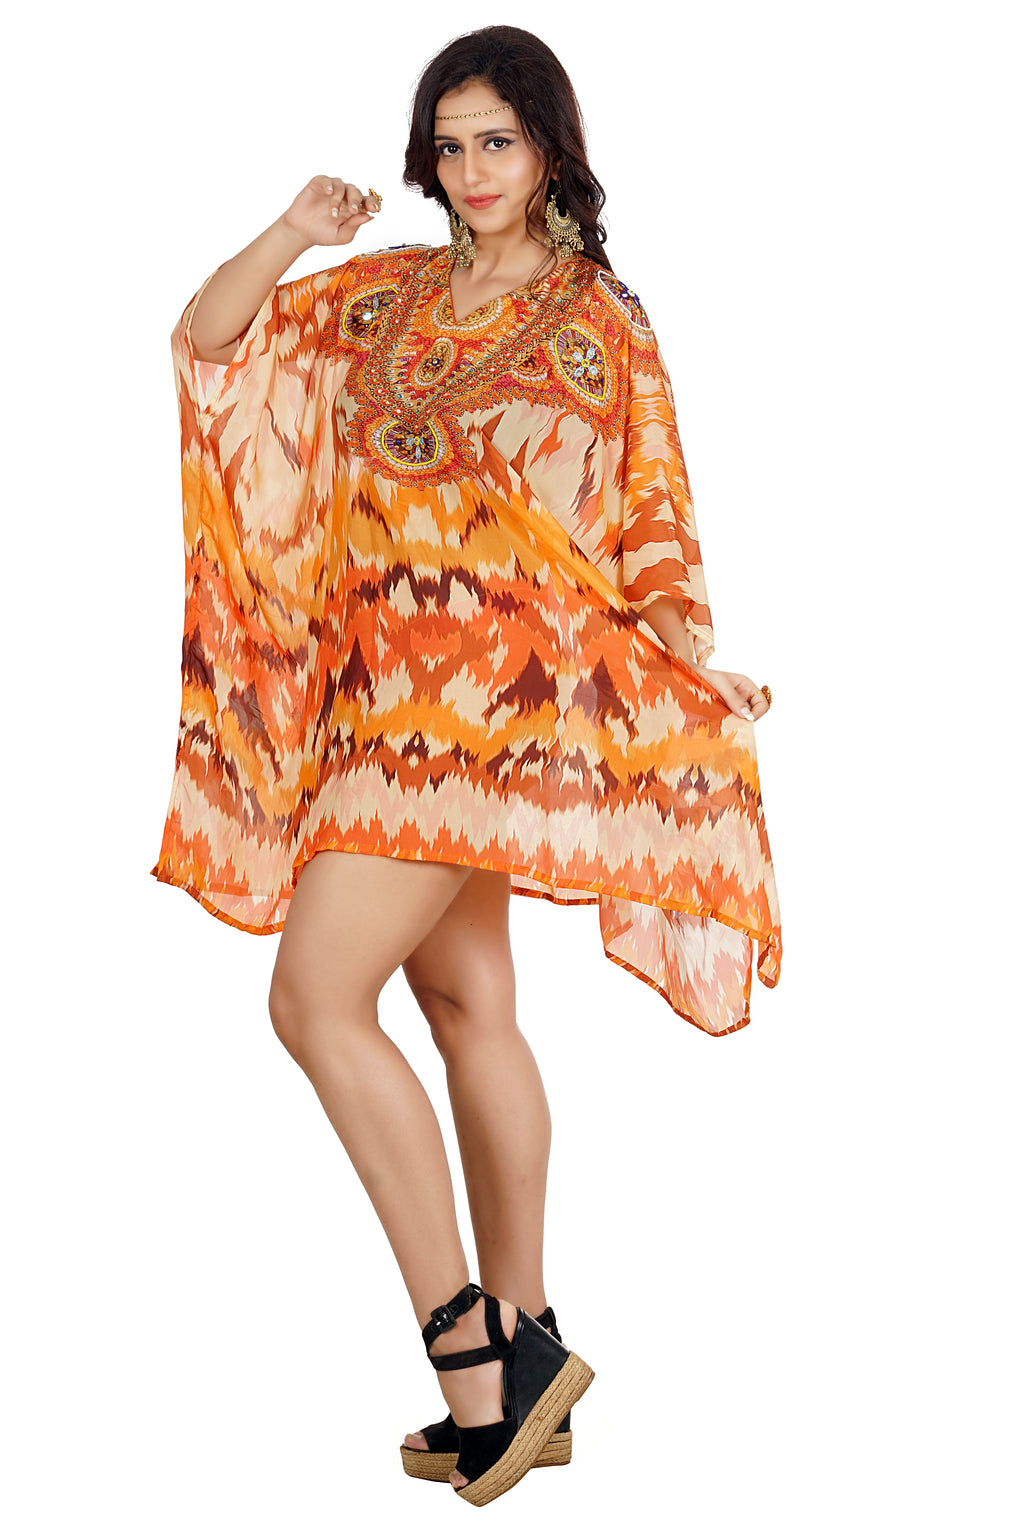 Silk caftan tunic Bright and elegantly embellished short-length orange colored kaftan from Silk Kaftans - Silk kaftan